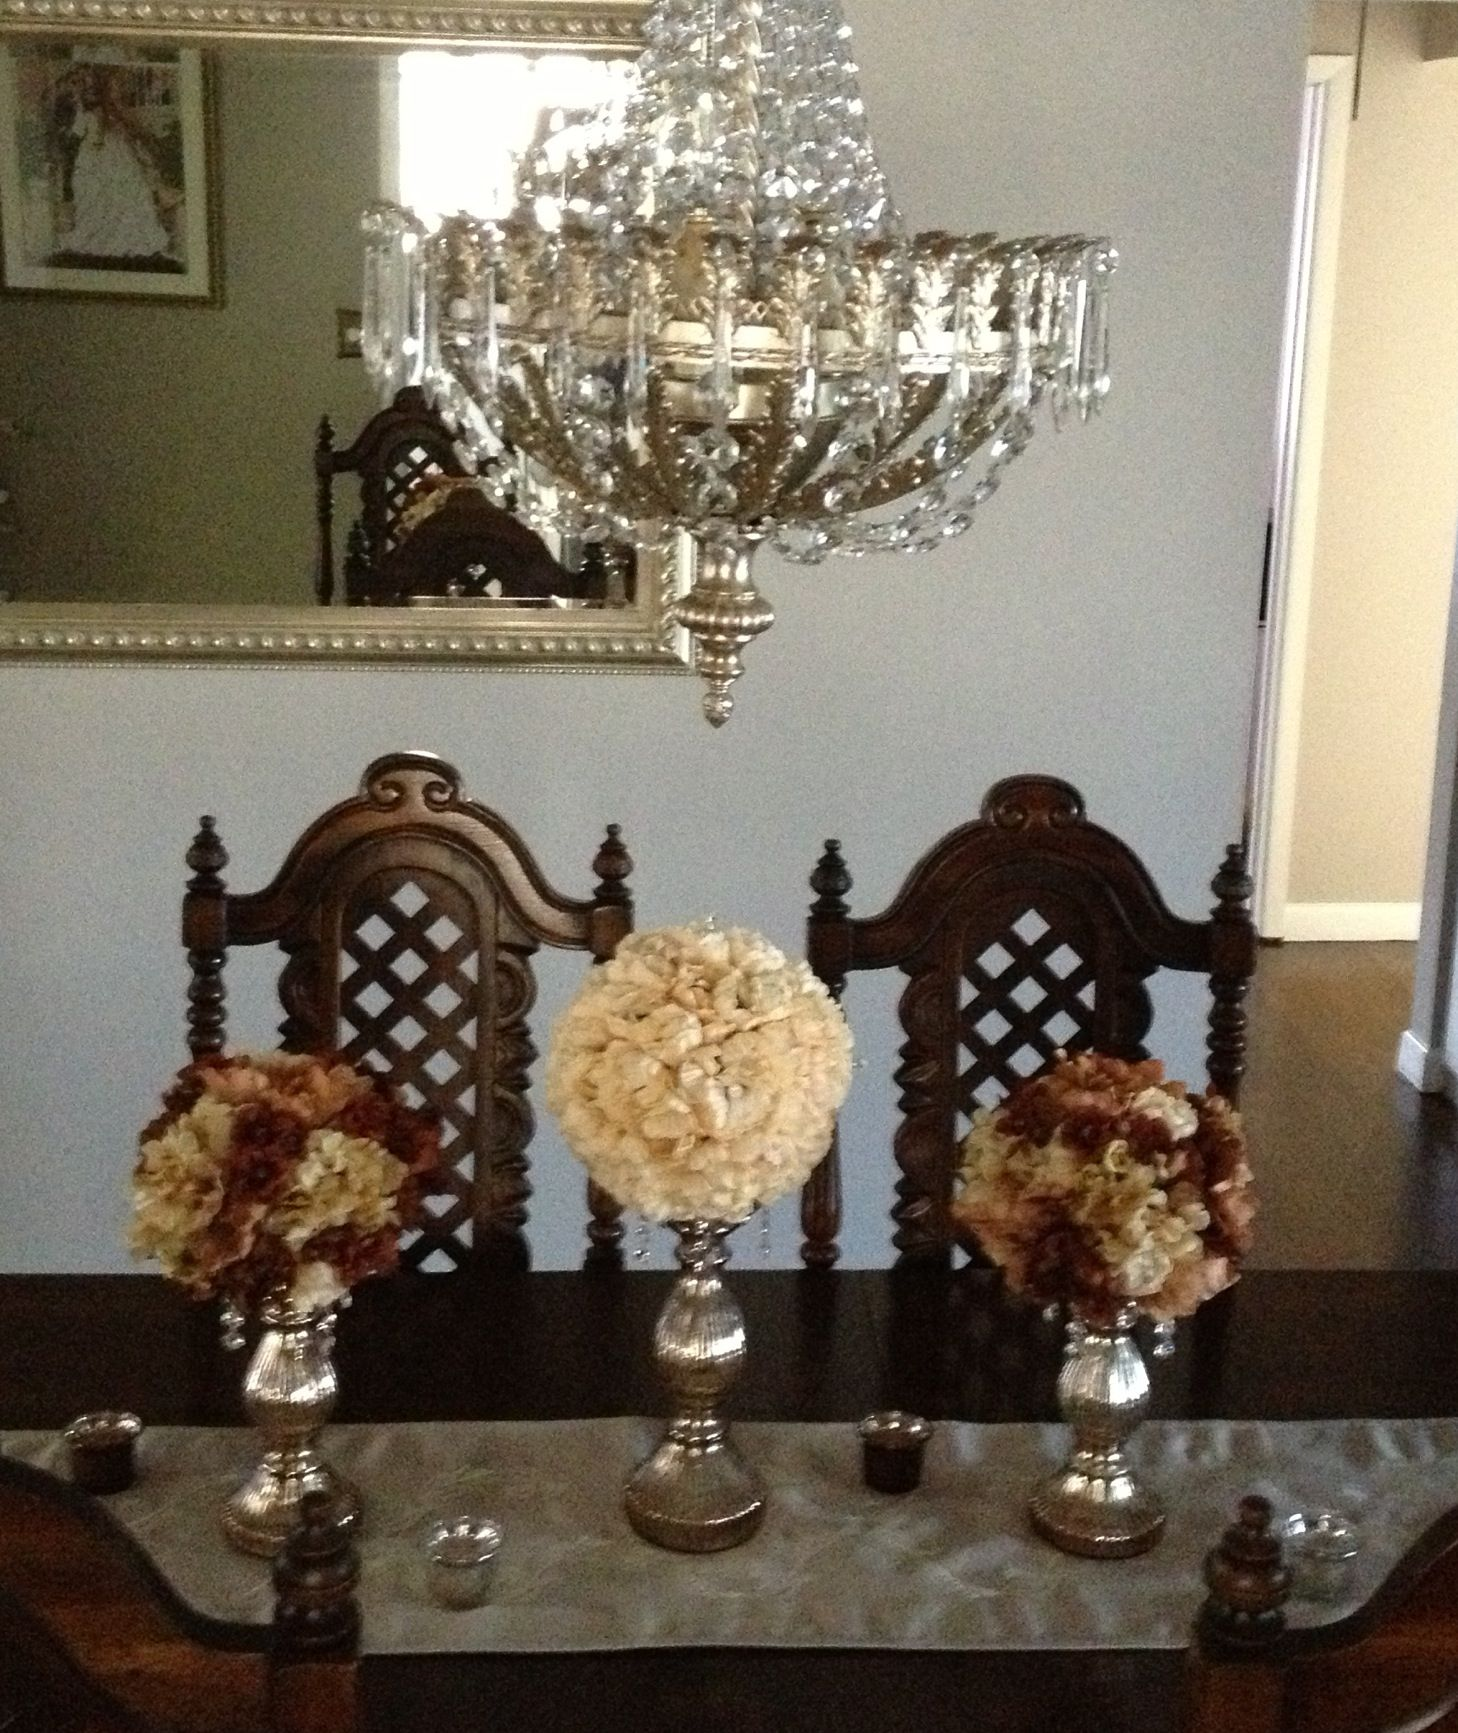 Dining Room Table Decor | Centerpieces | Pinterest | Dining room ...